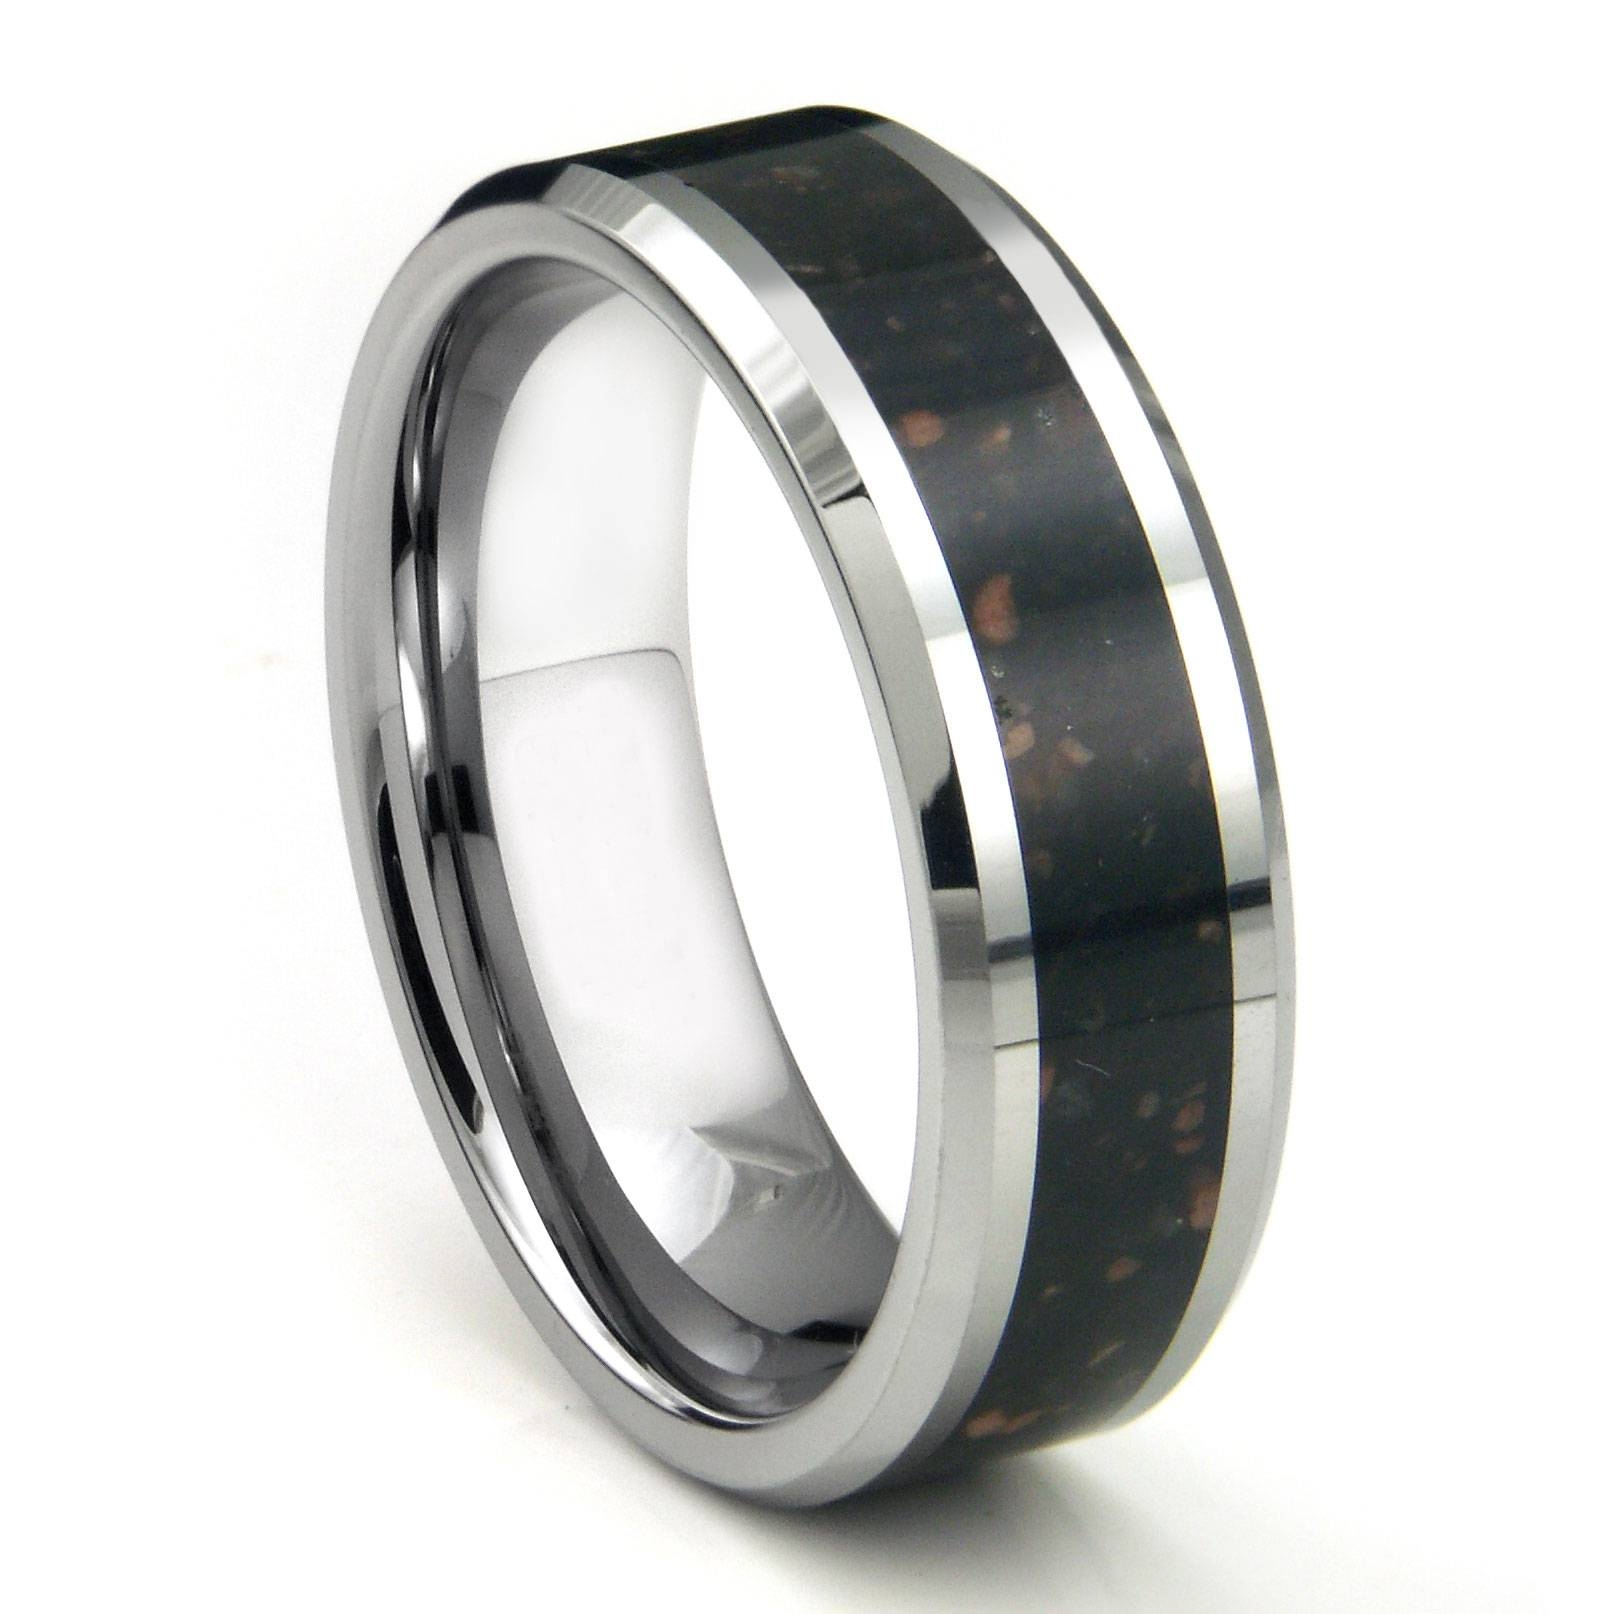 Tungsten Carbide Black Lava Riverstone Inlay Wedding Band Ring Regarding Strongest Metal Wedding Bands (View 4 of 15)